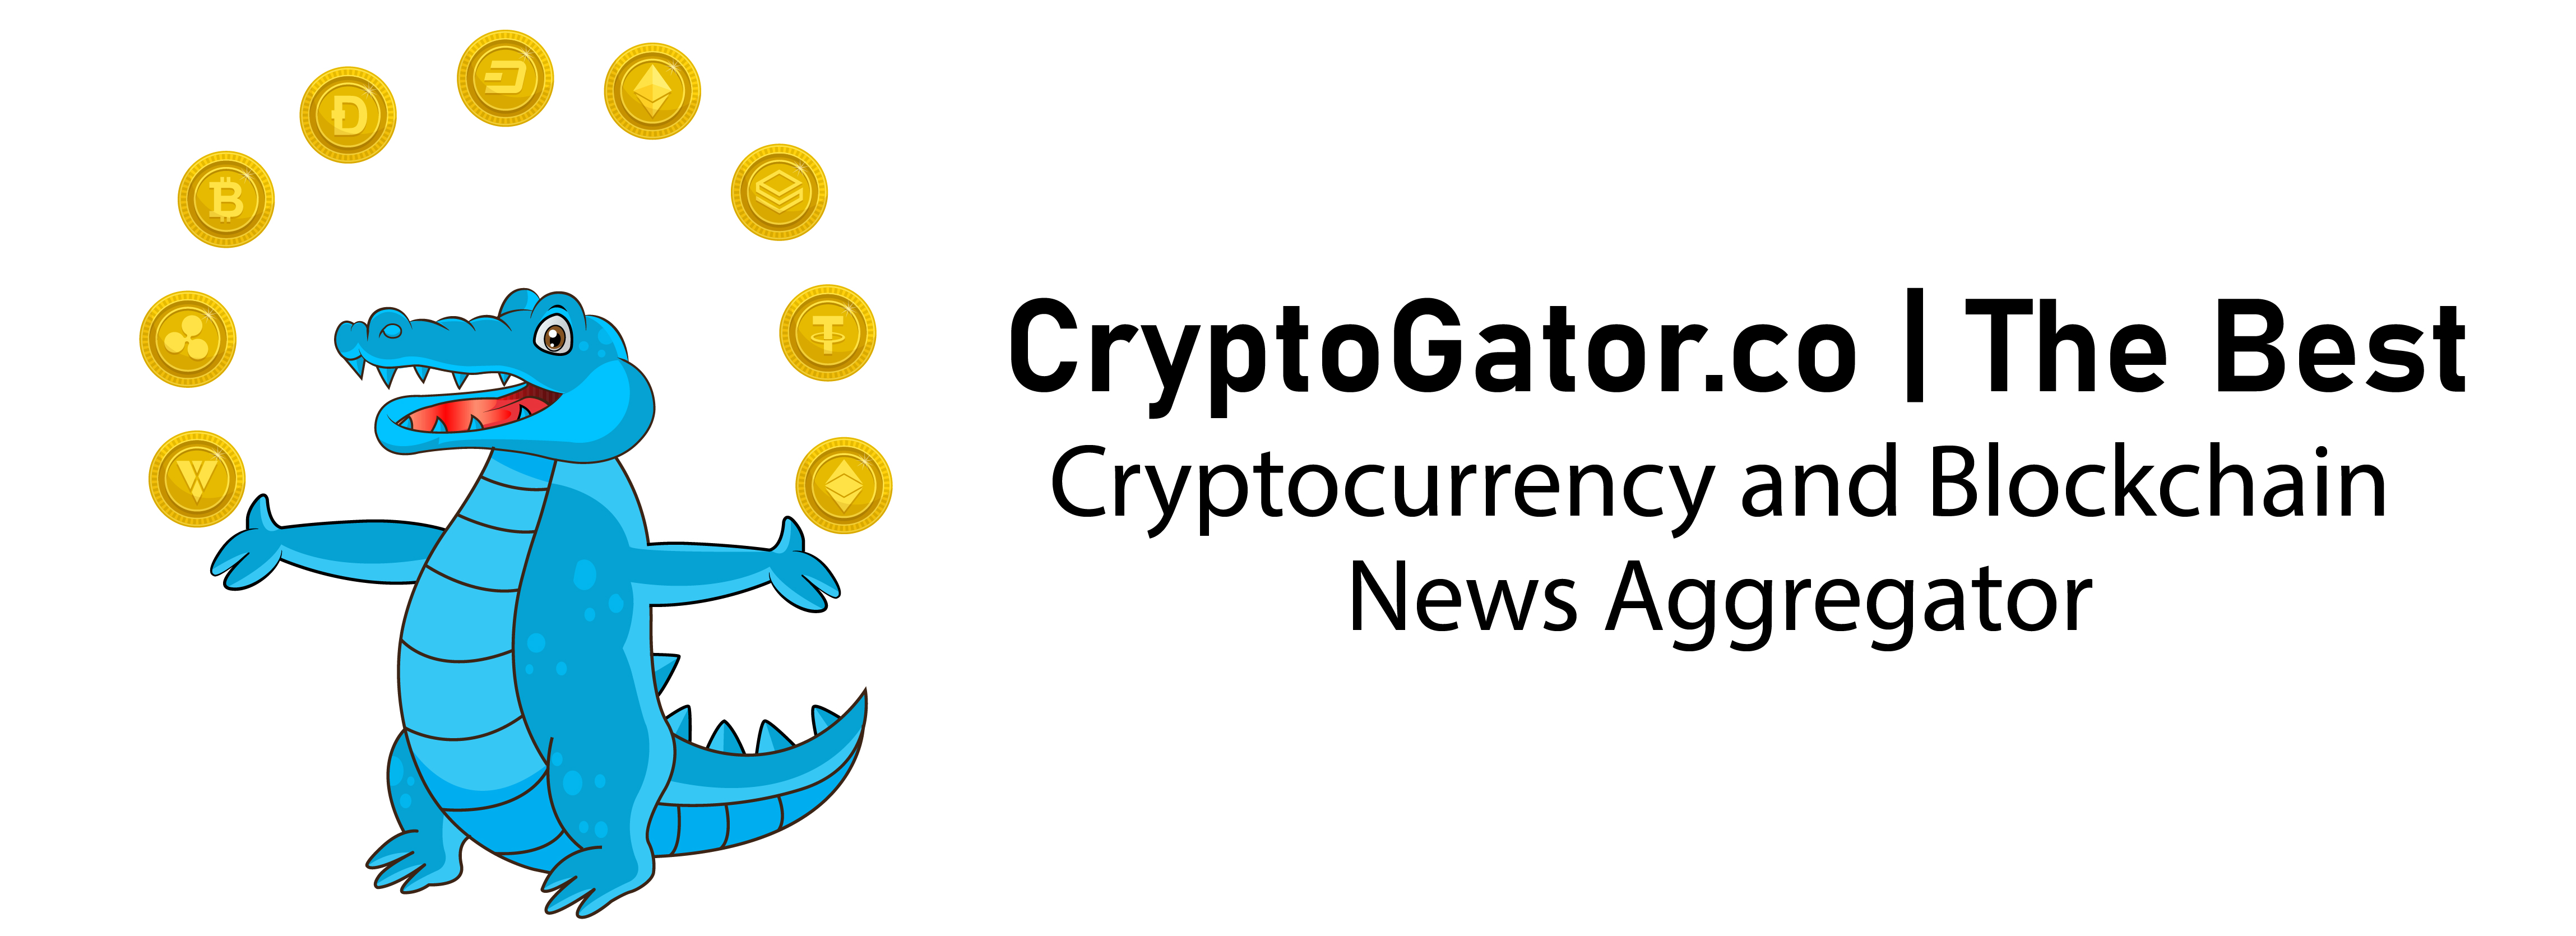 CryptoGator.co | The Best Cryptocurrency and Blockchain News Aggregator